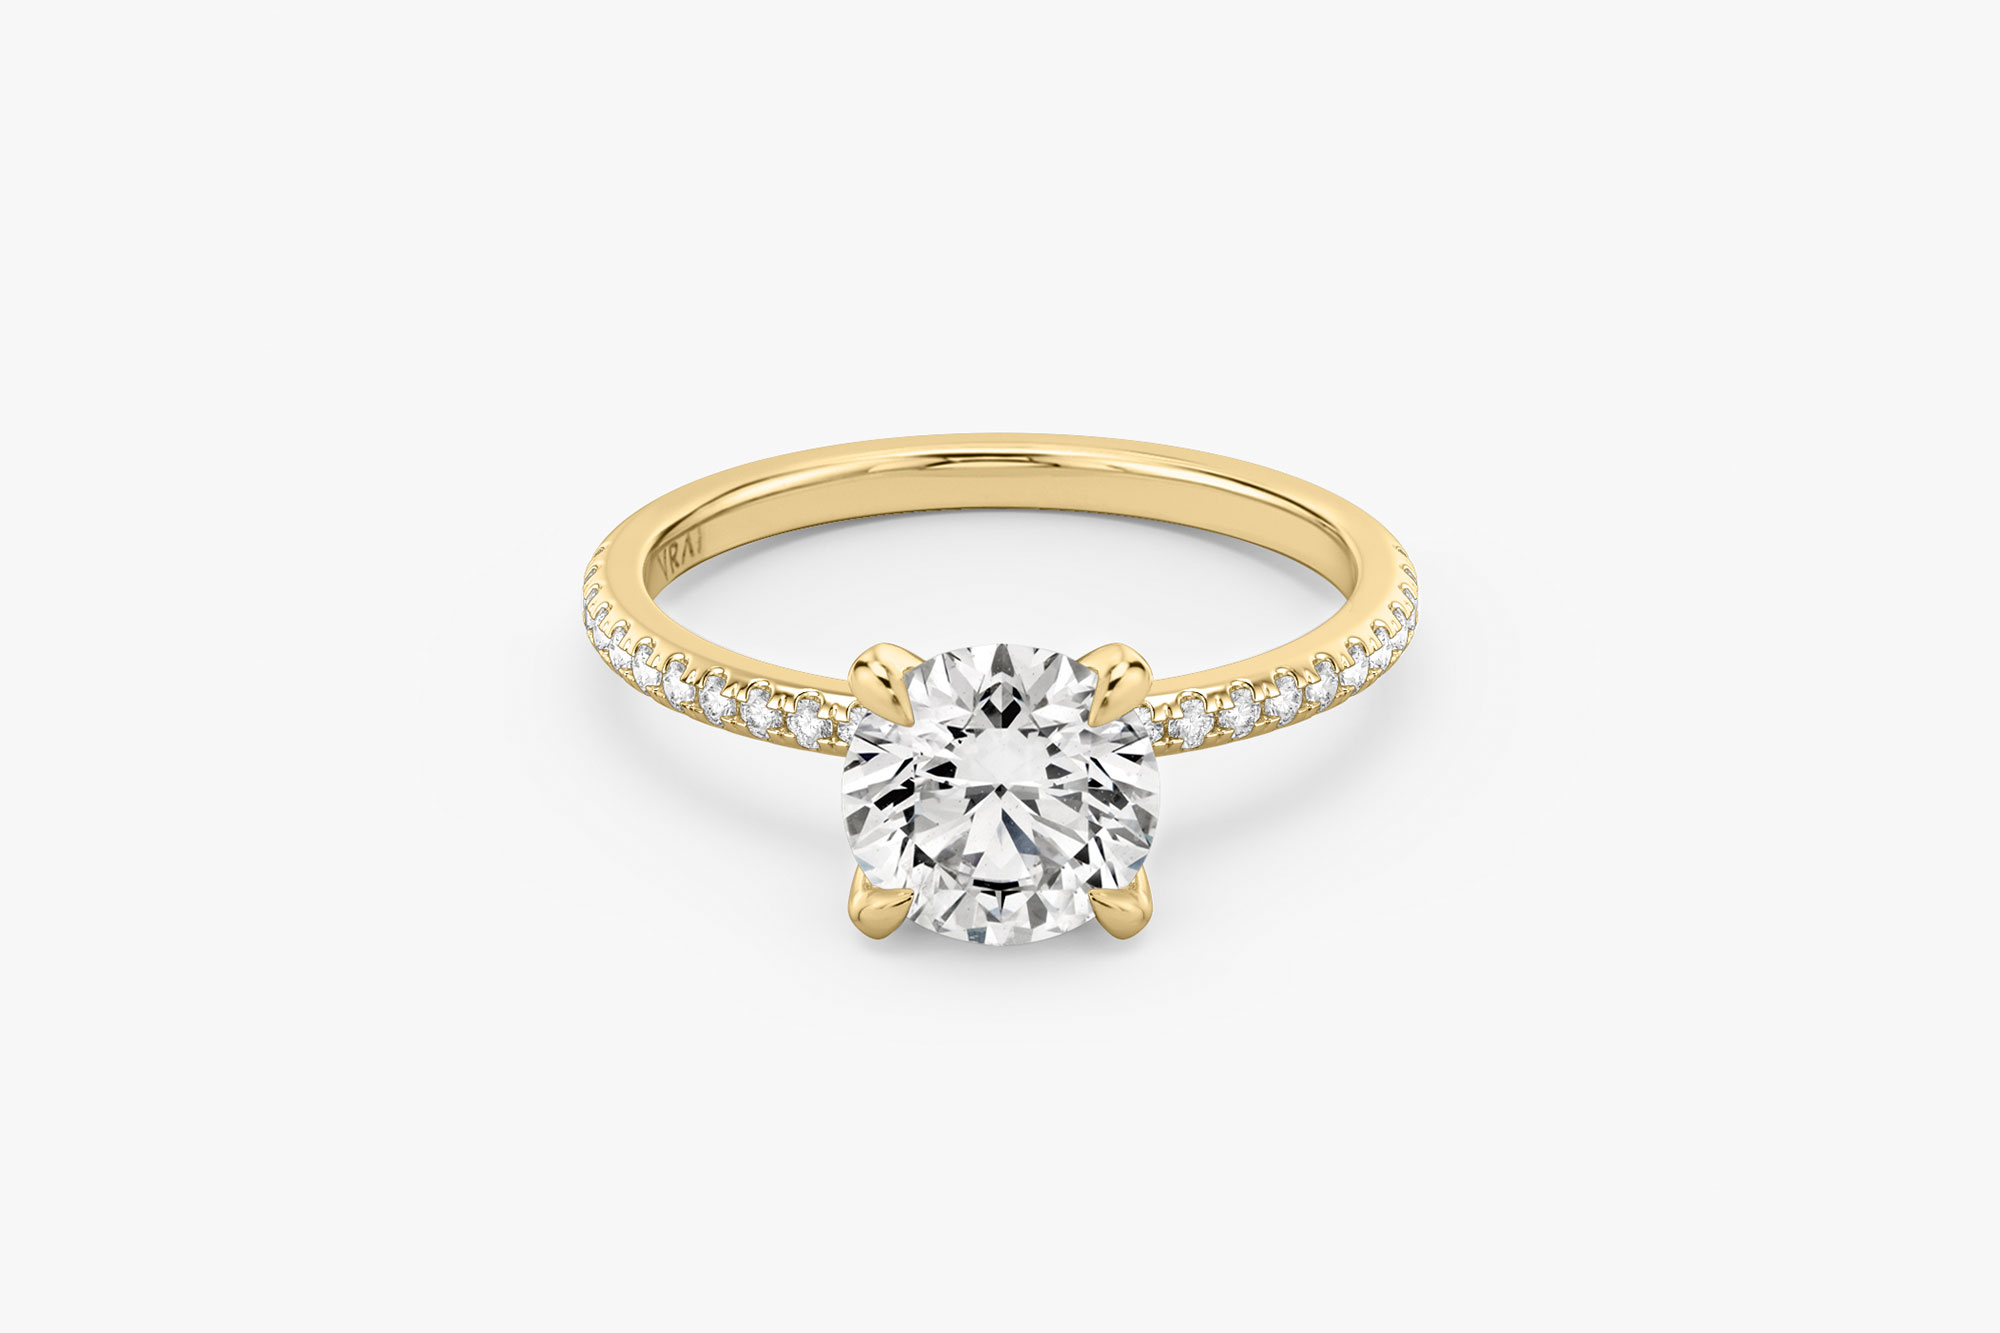 The Classic solitaire in 18k yellow gold with a round brilliant cut diamond and pavé band